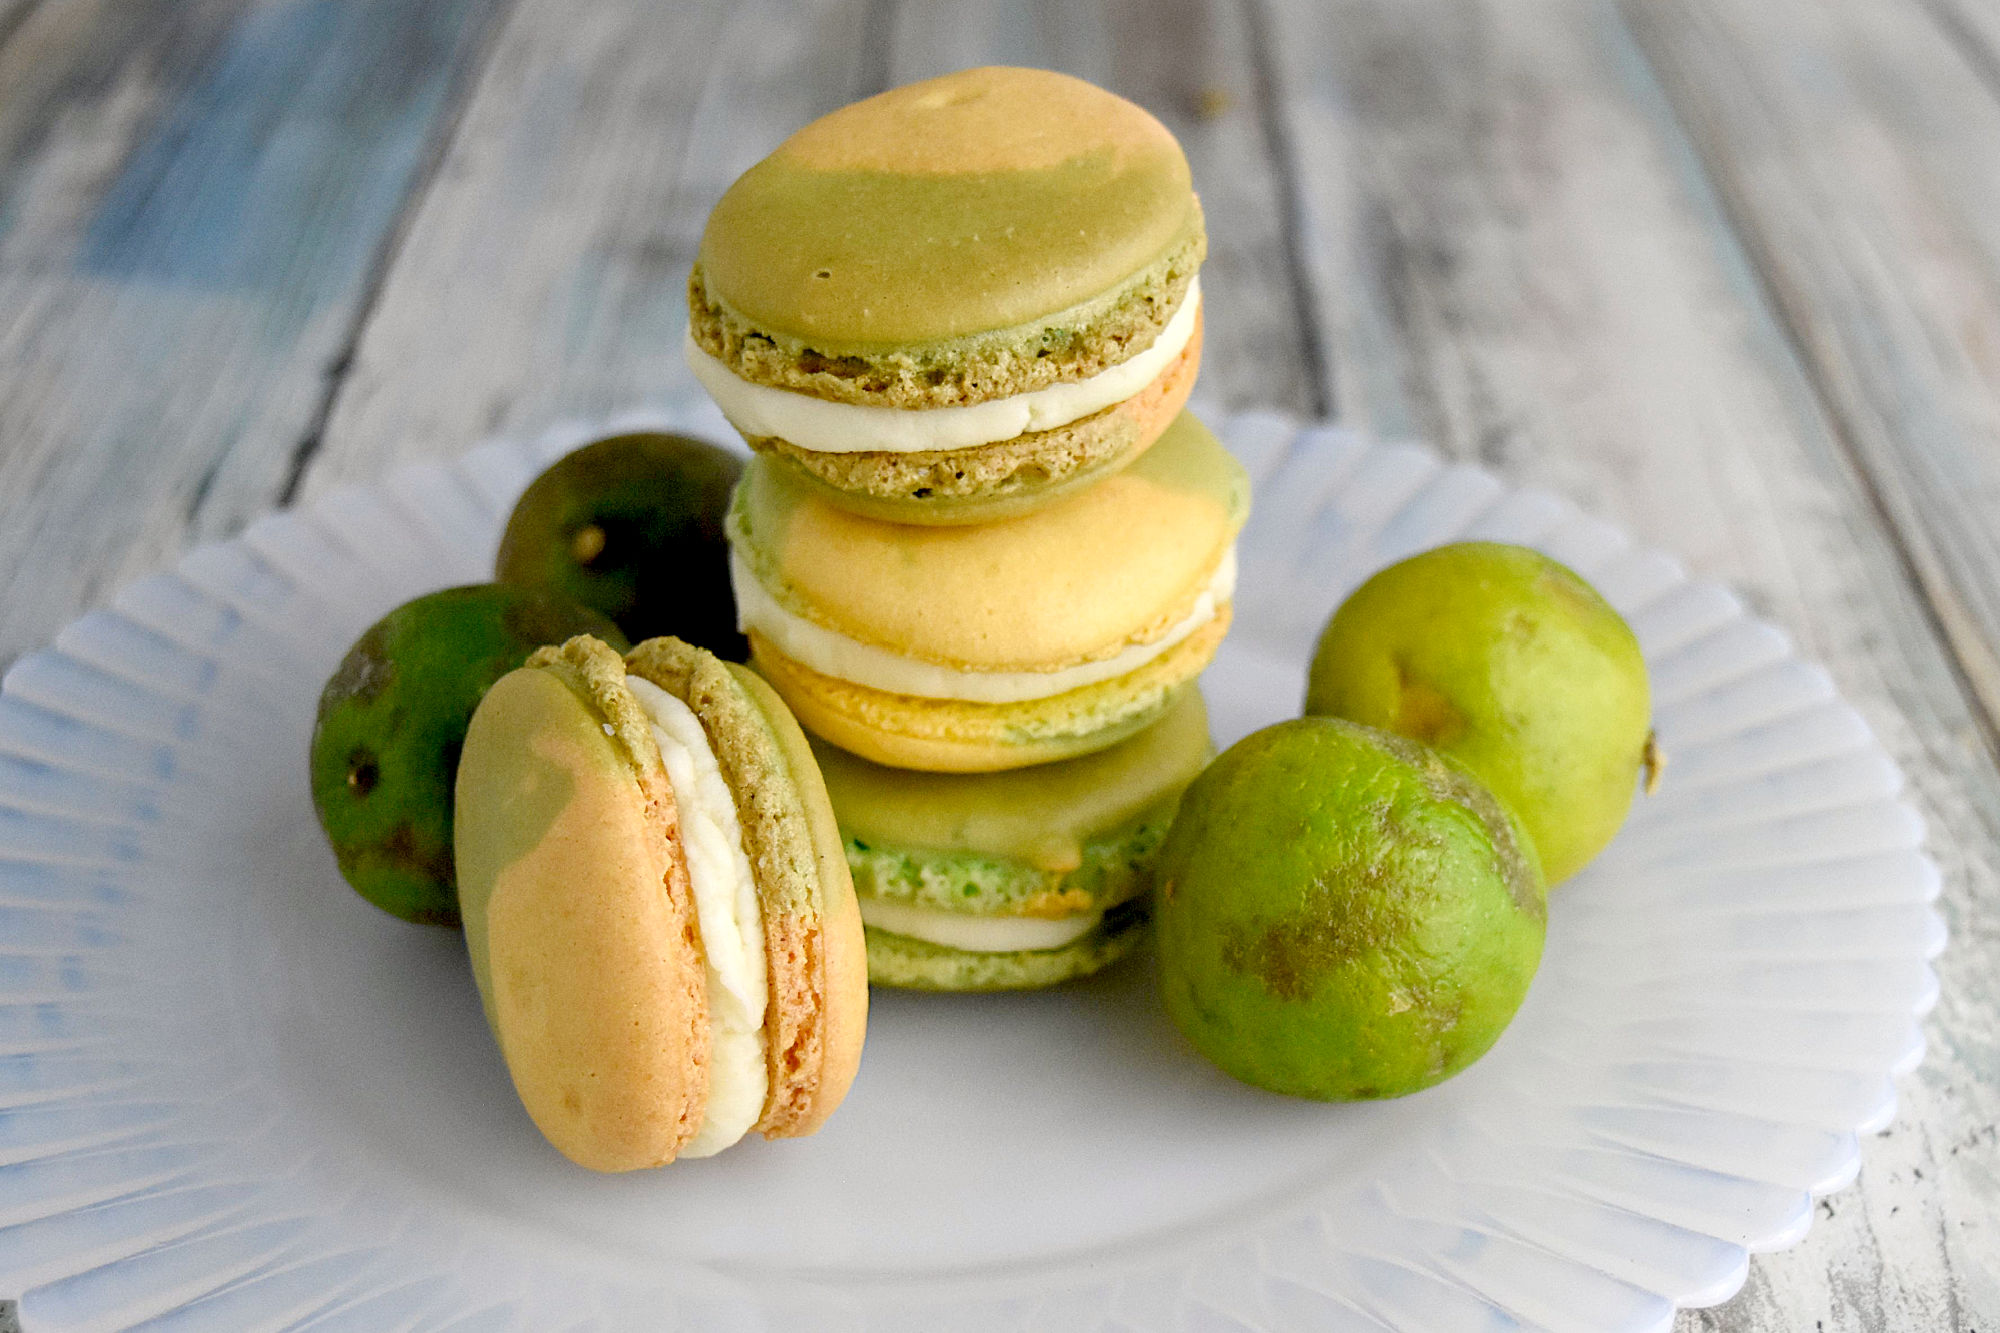 Lemon Lime Macaron have lemon in the shells and key lime buttercream filling. They're the perfect sweet tart treat.